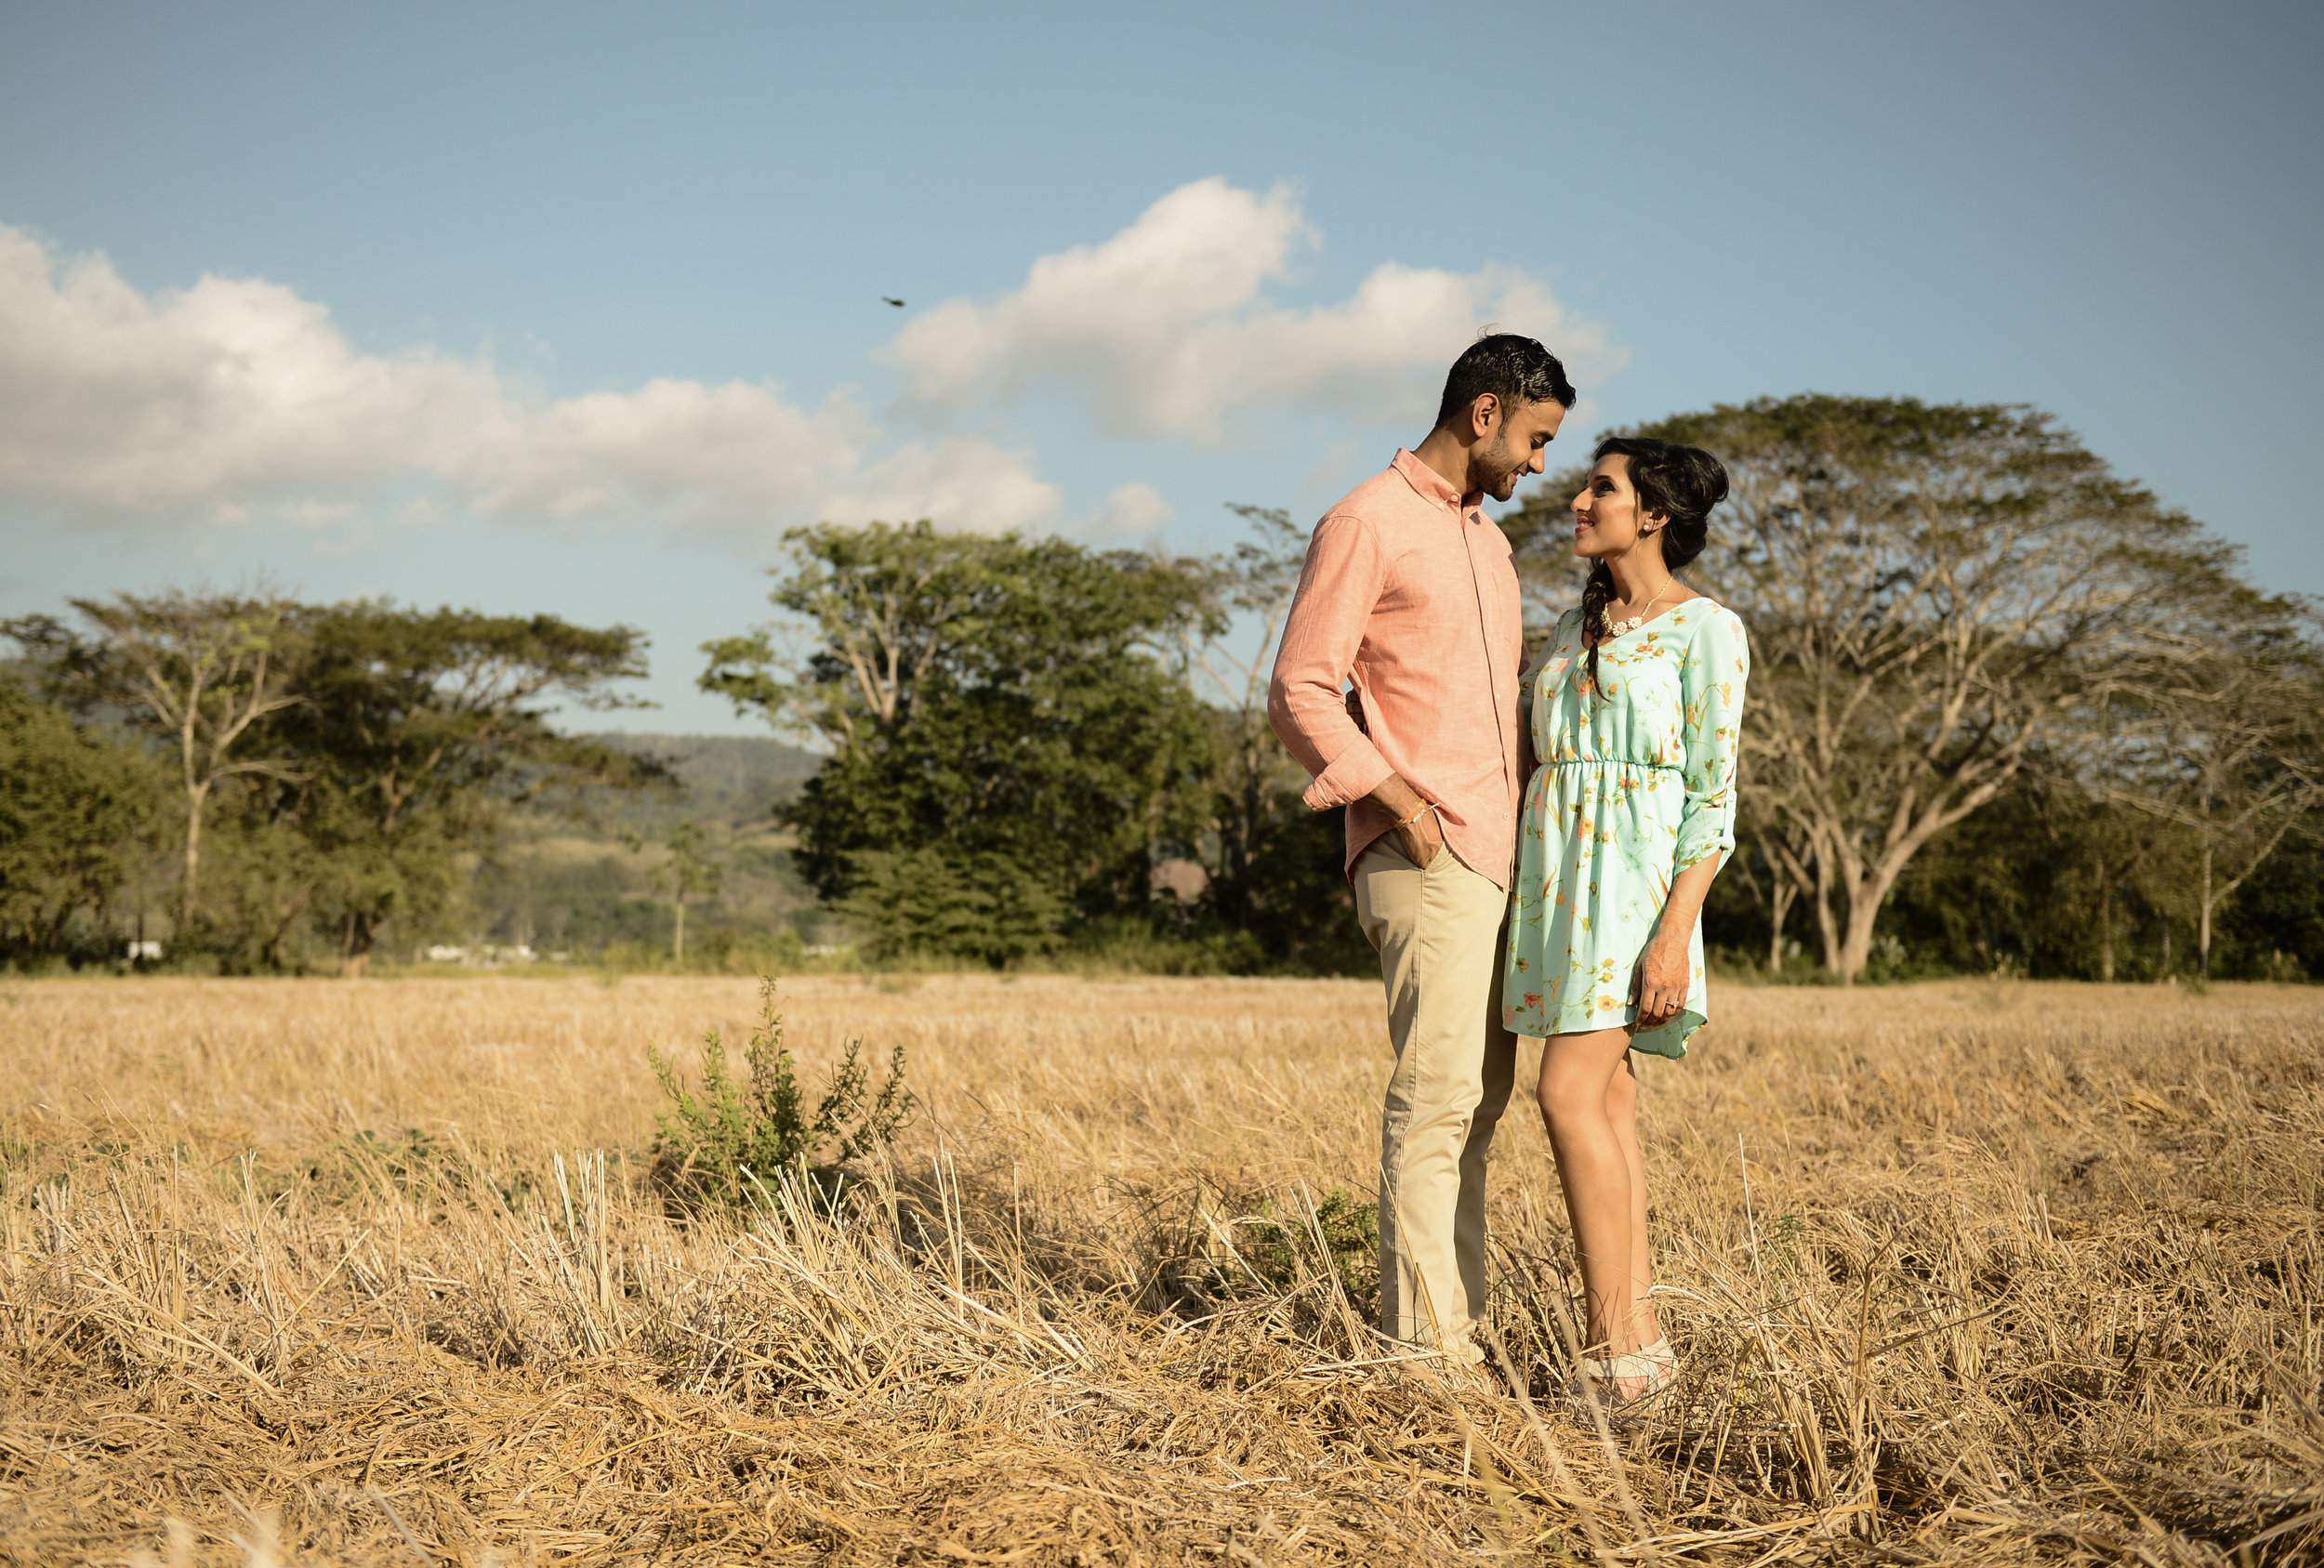 costa-rica-weddings-roshni-jignesh-03.jpg